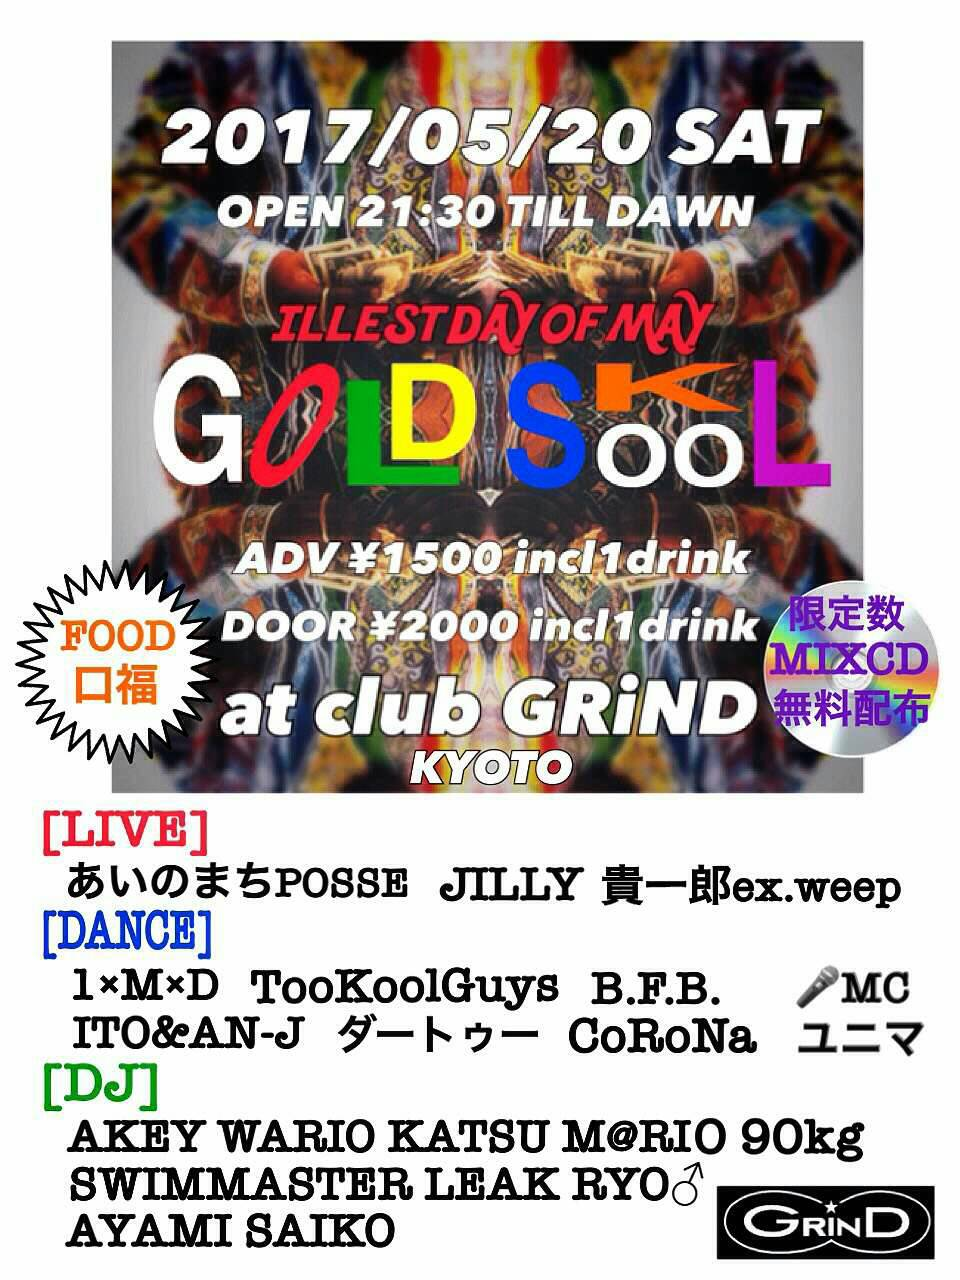 2017/5/20(sat)GOLD SKOOL〜Illest day of may〜 @ club GRIND 京都河原町今出川